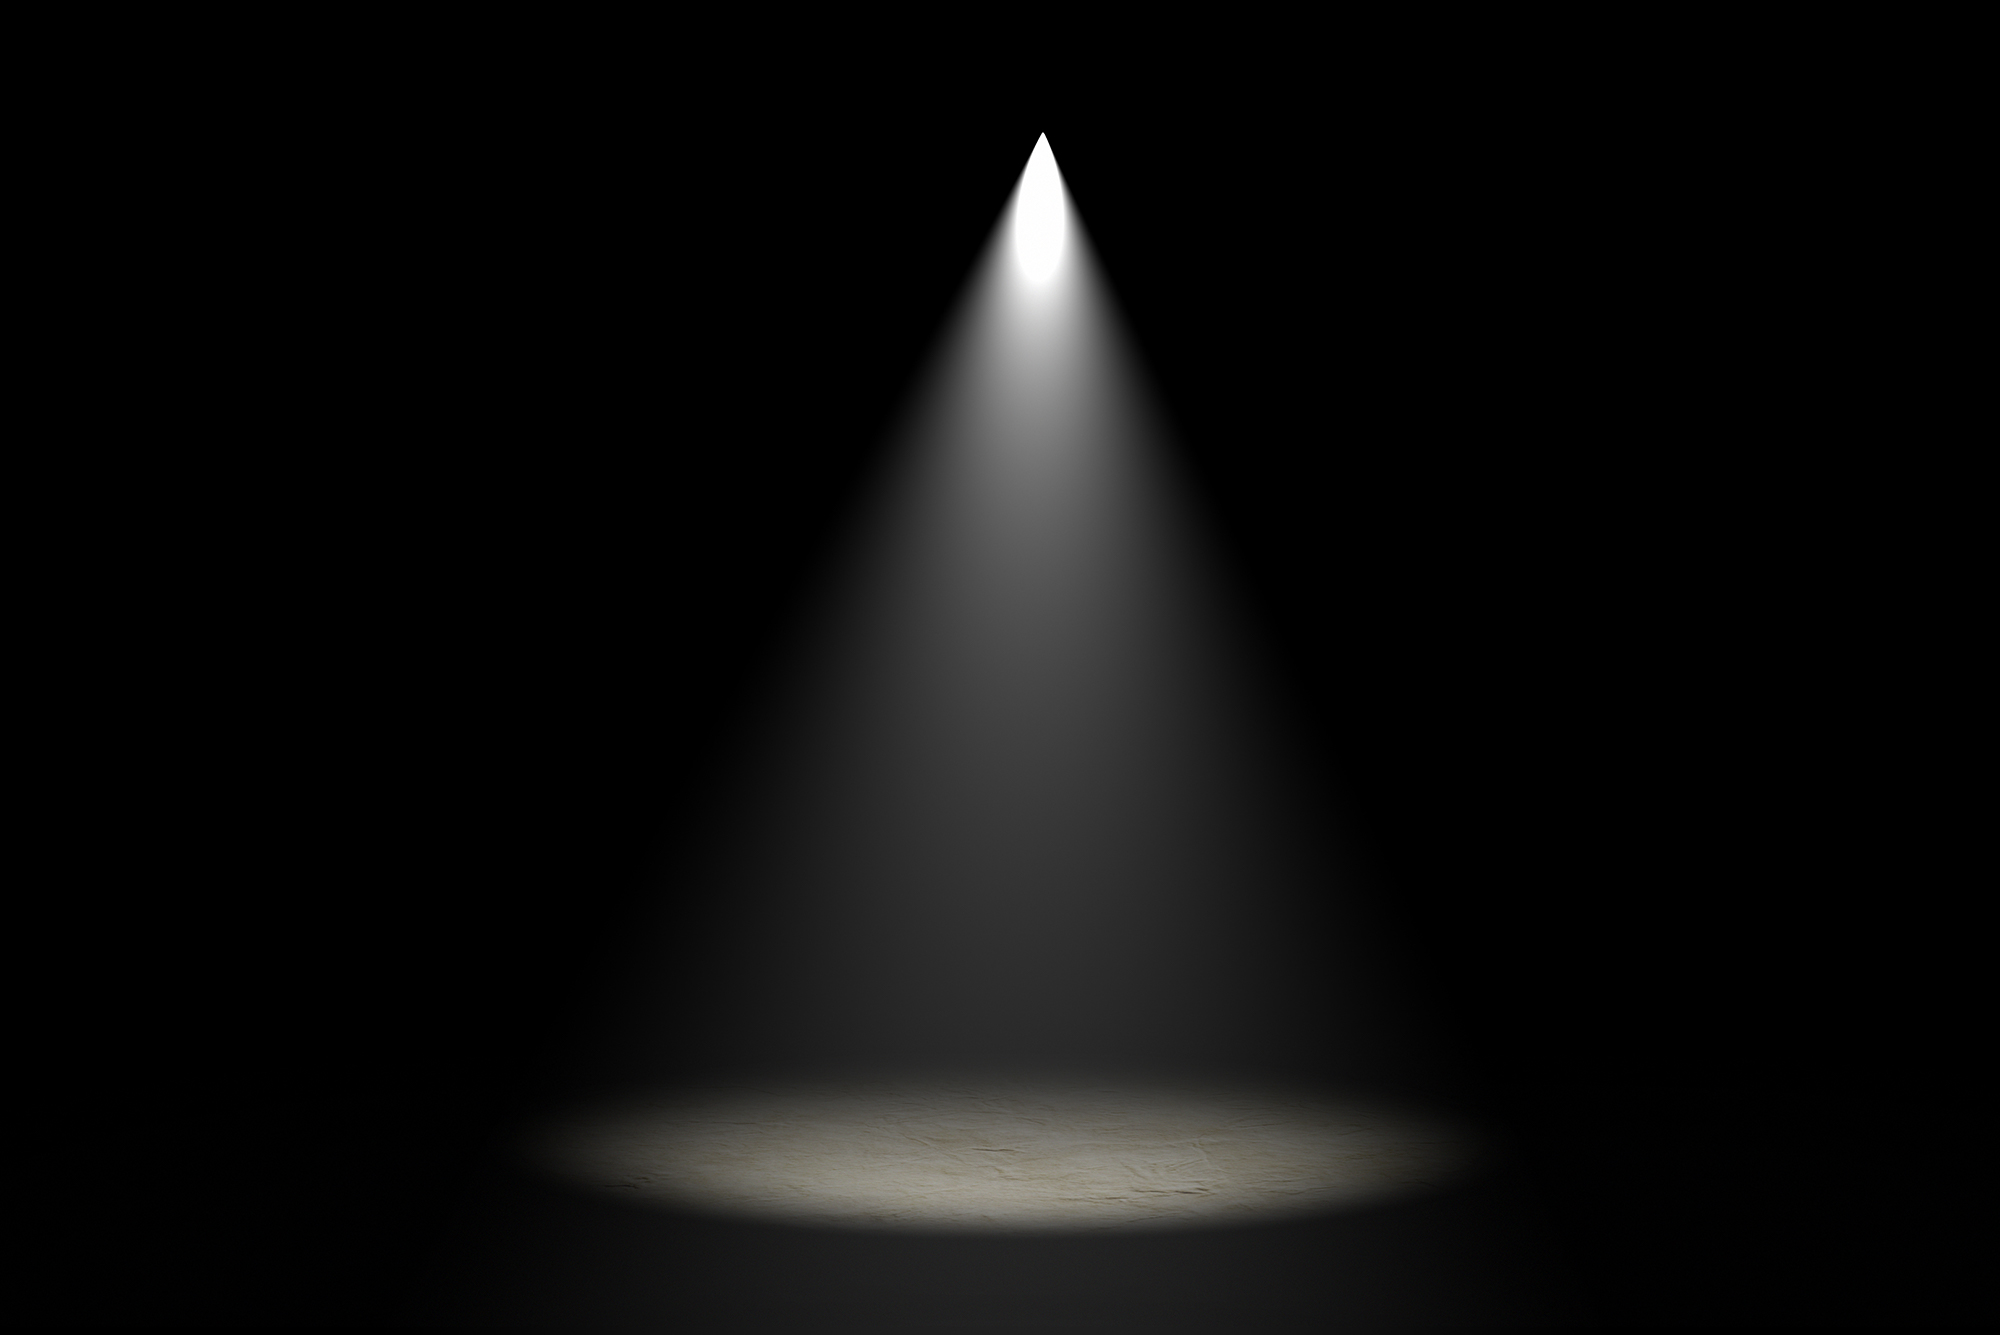 Photo of stage light shining directly down onto a stage in a completely dark room.